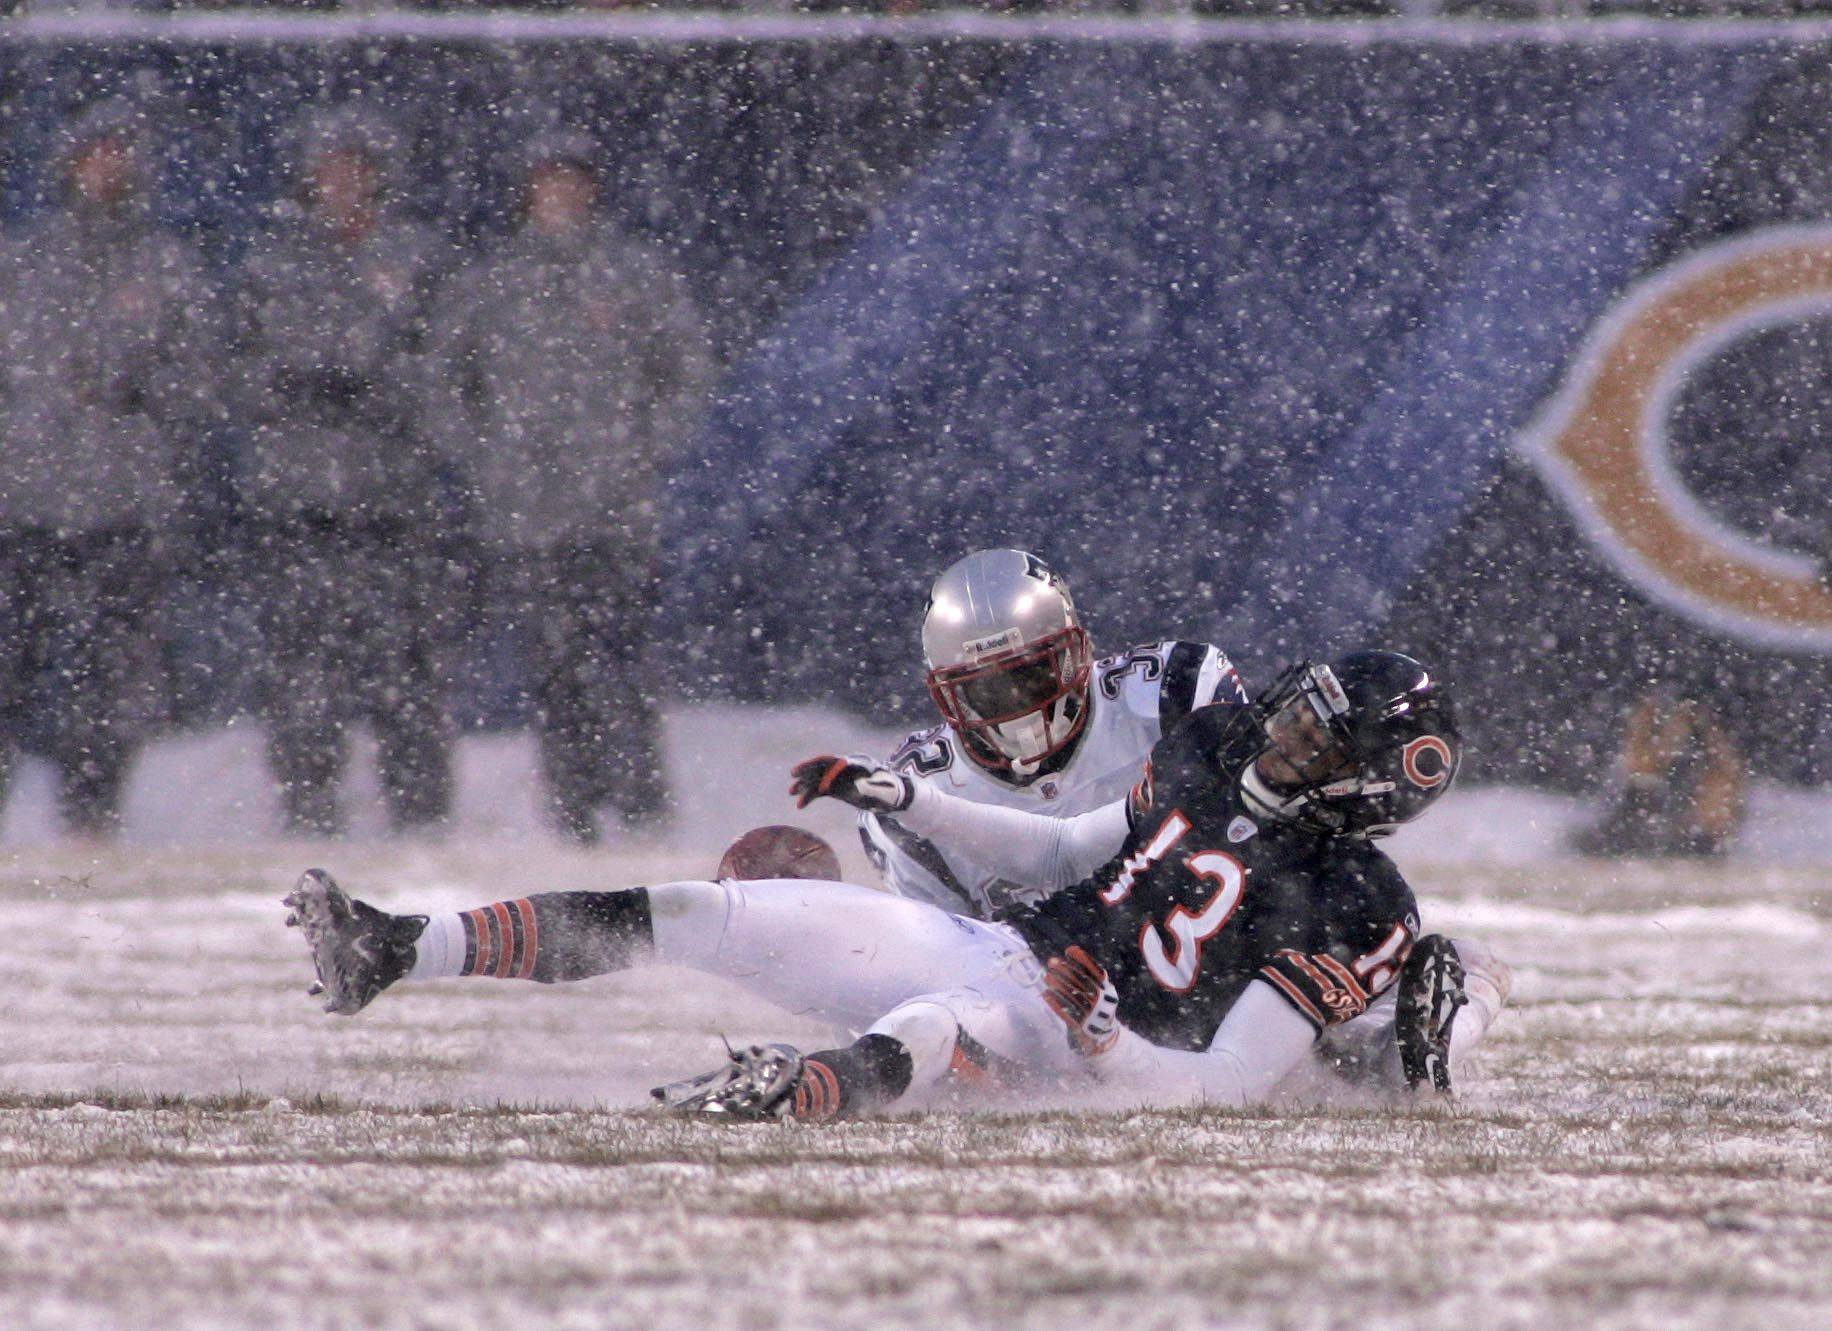 Chicago Bears wide receiver Johnny Knox rolls on the ground after fumbling a pass in the second quarter. New England Patriots safety Brandon Meriweather caused the fumble which resulted in a Patriot touchdown.